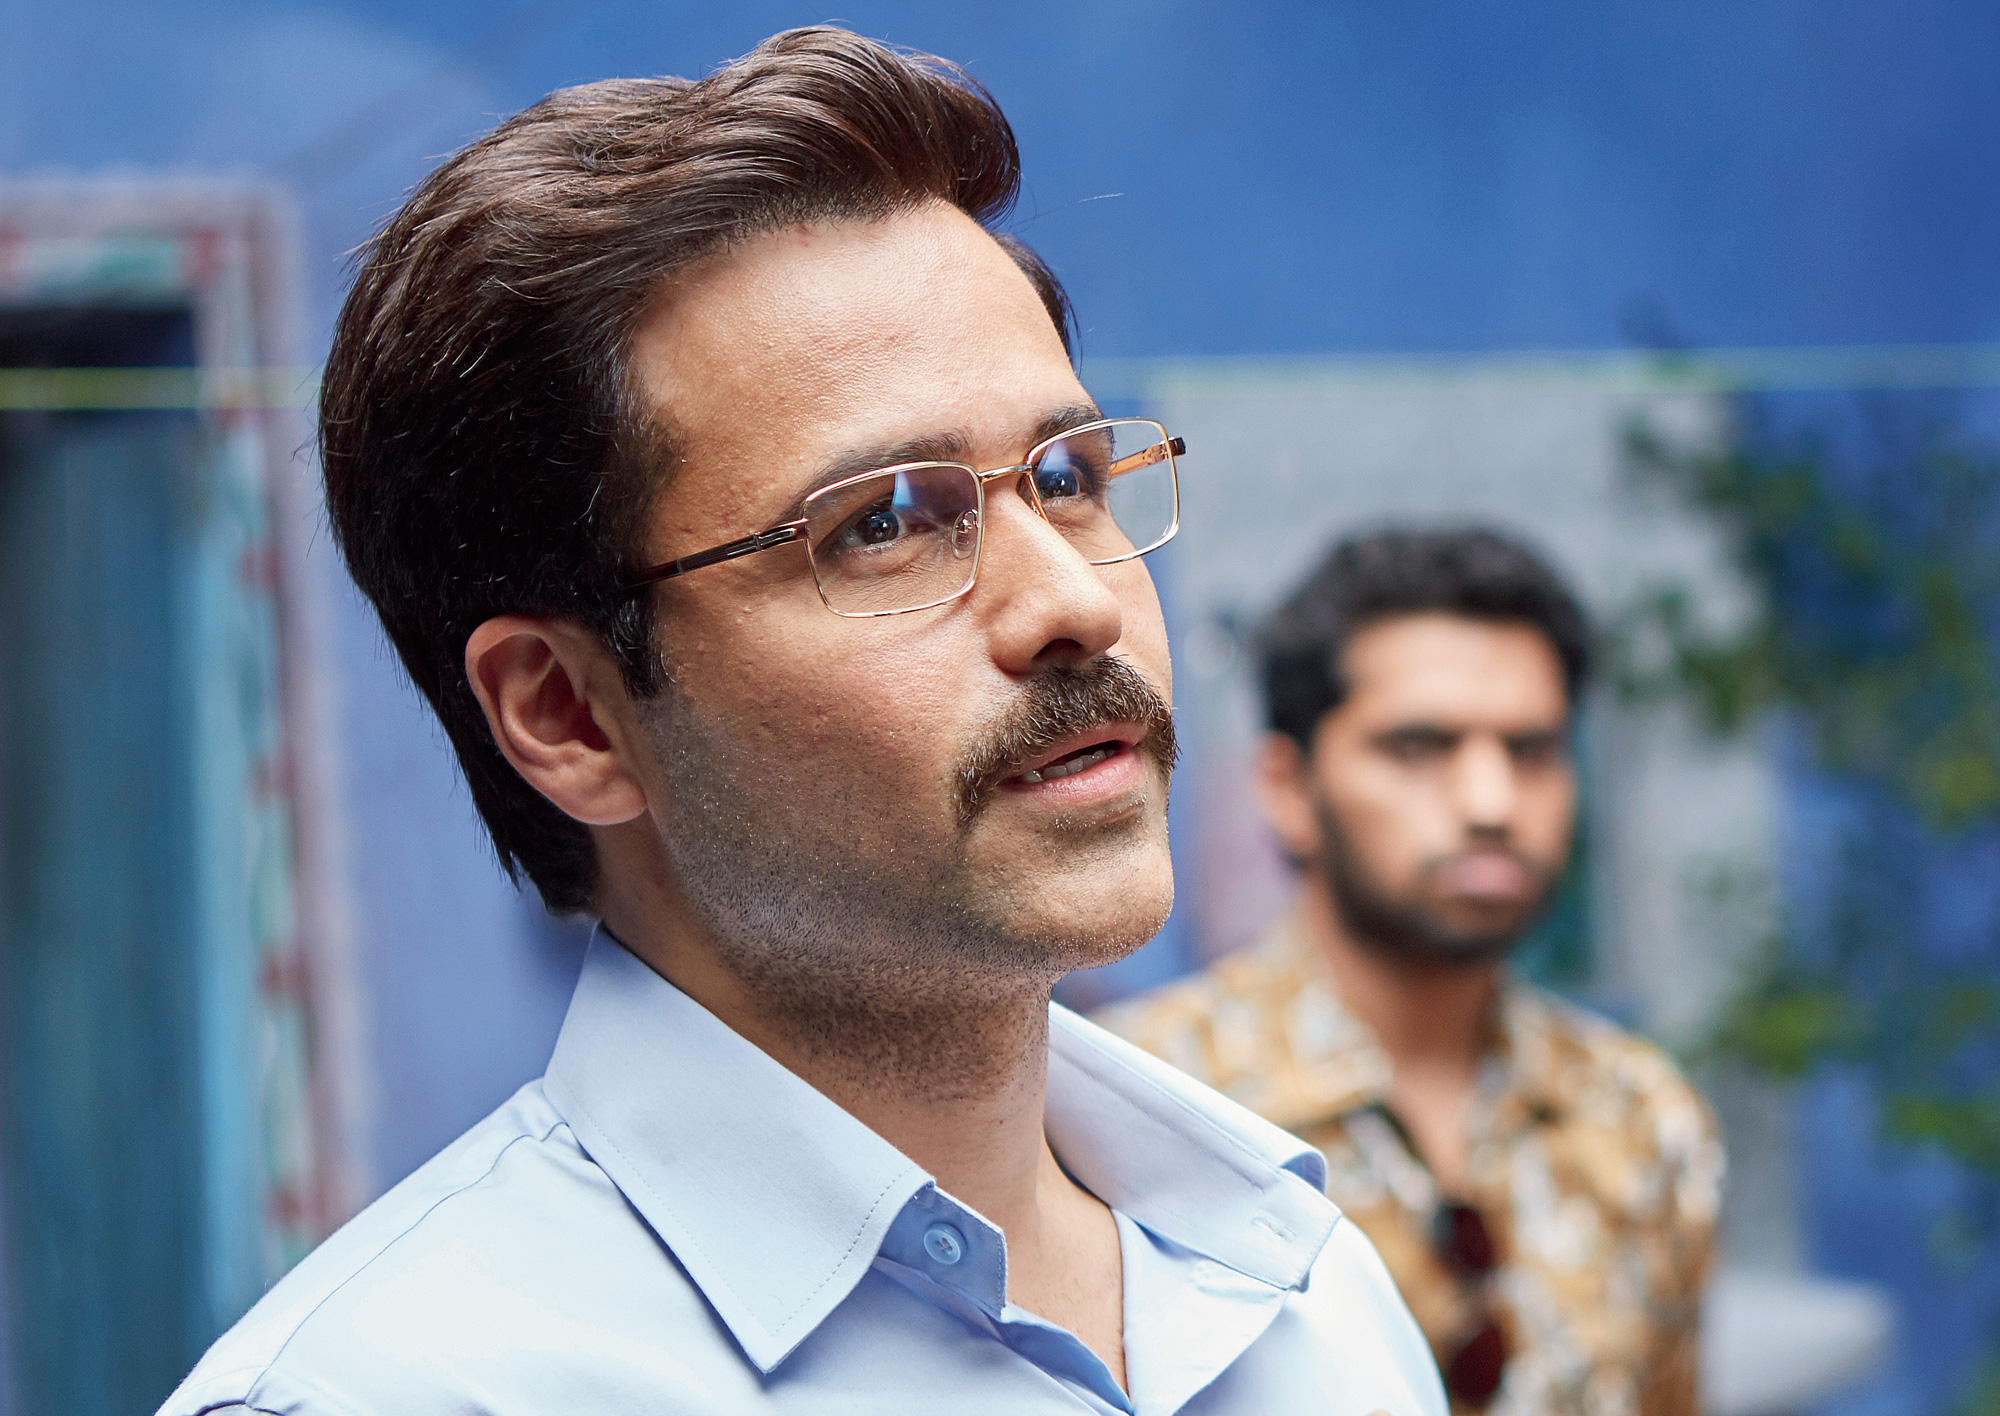 Emraan Hashmi's film takes on the Indian education system